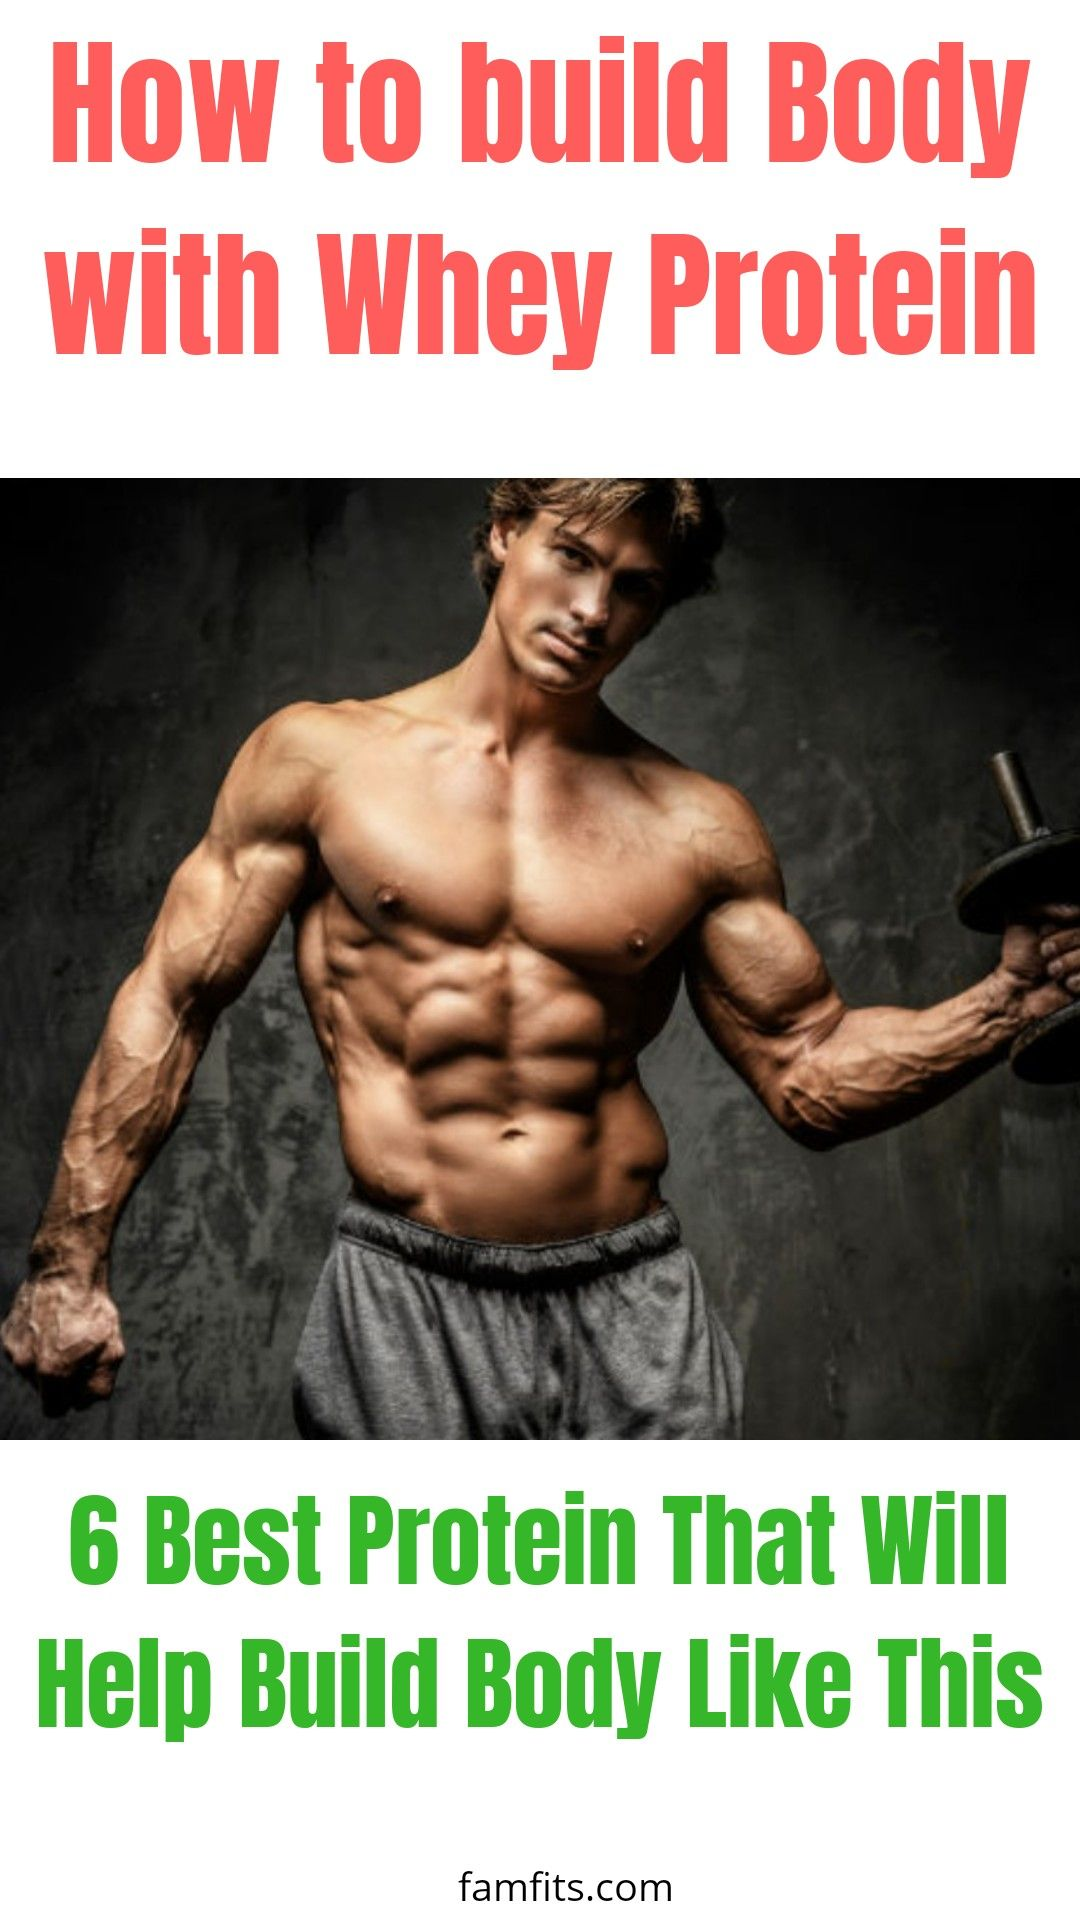 Whey protein reviewprice and the best choice for muscle building Muscle building supplements